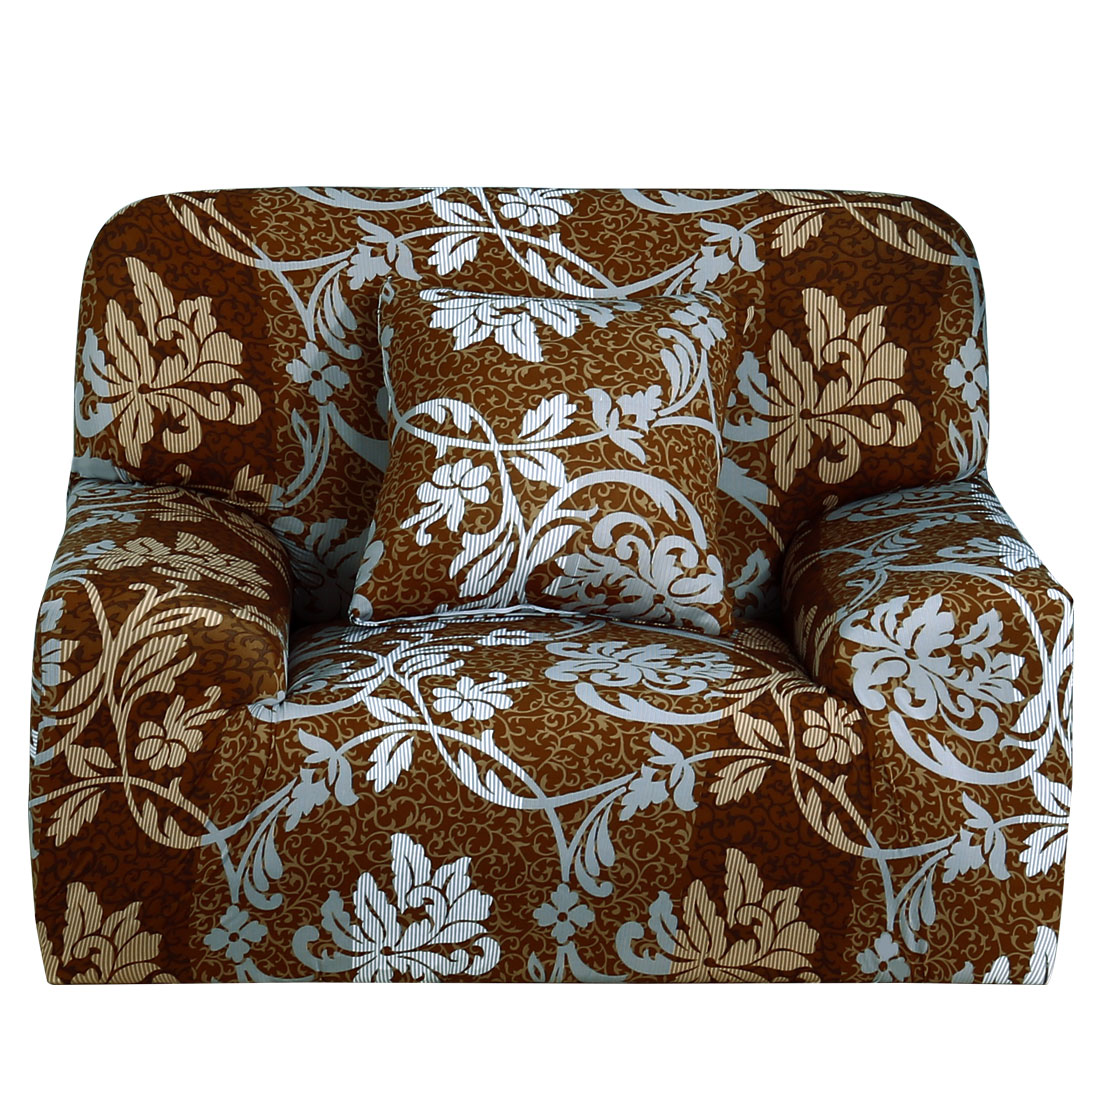 Stretch Sofa Cover Chair Loveseat Couch Slipcover Protector 1 Seater - 2Packs